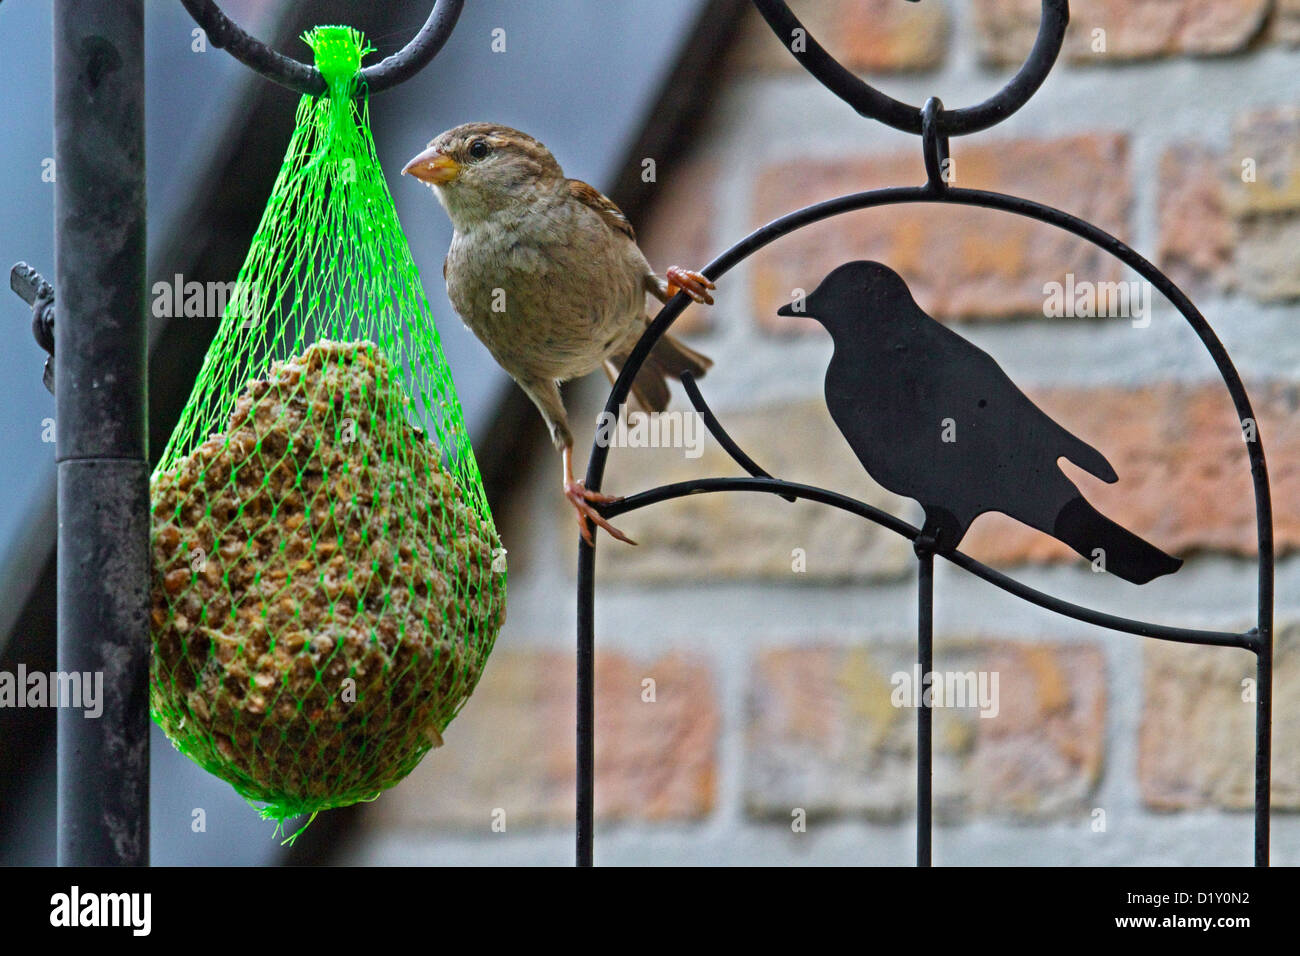 House Sparrow (Passer domesticus) female on bird feeder with fat ball on balcony - Stock Image